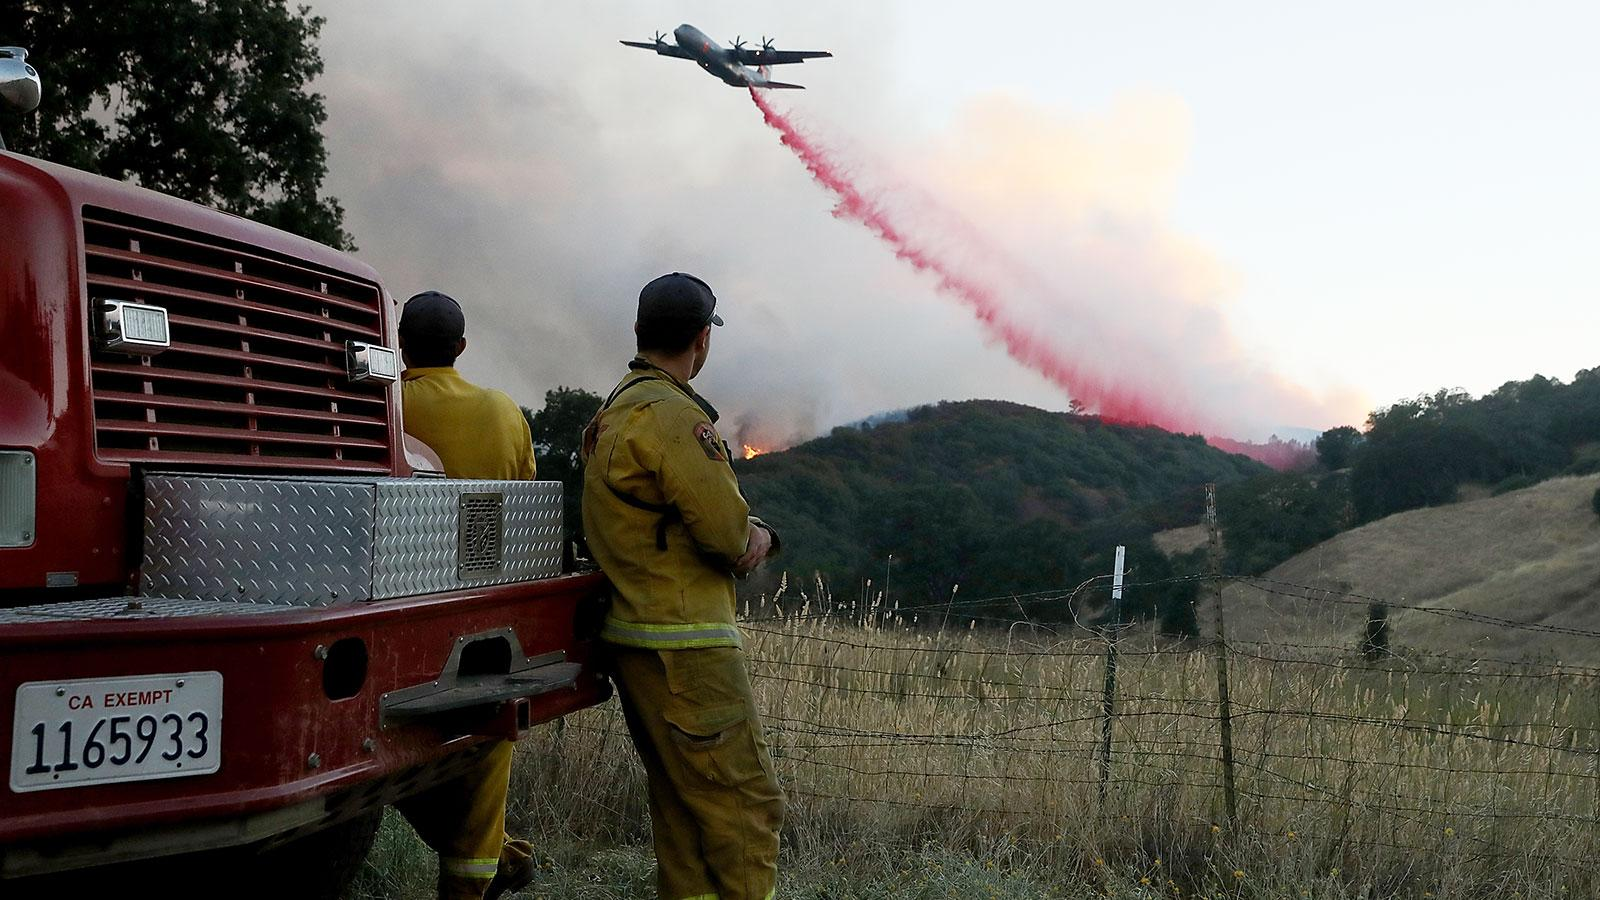 California Wine Country Bracing for Fire Season